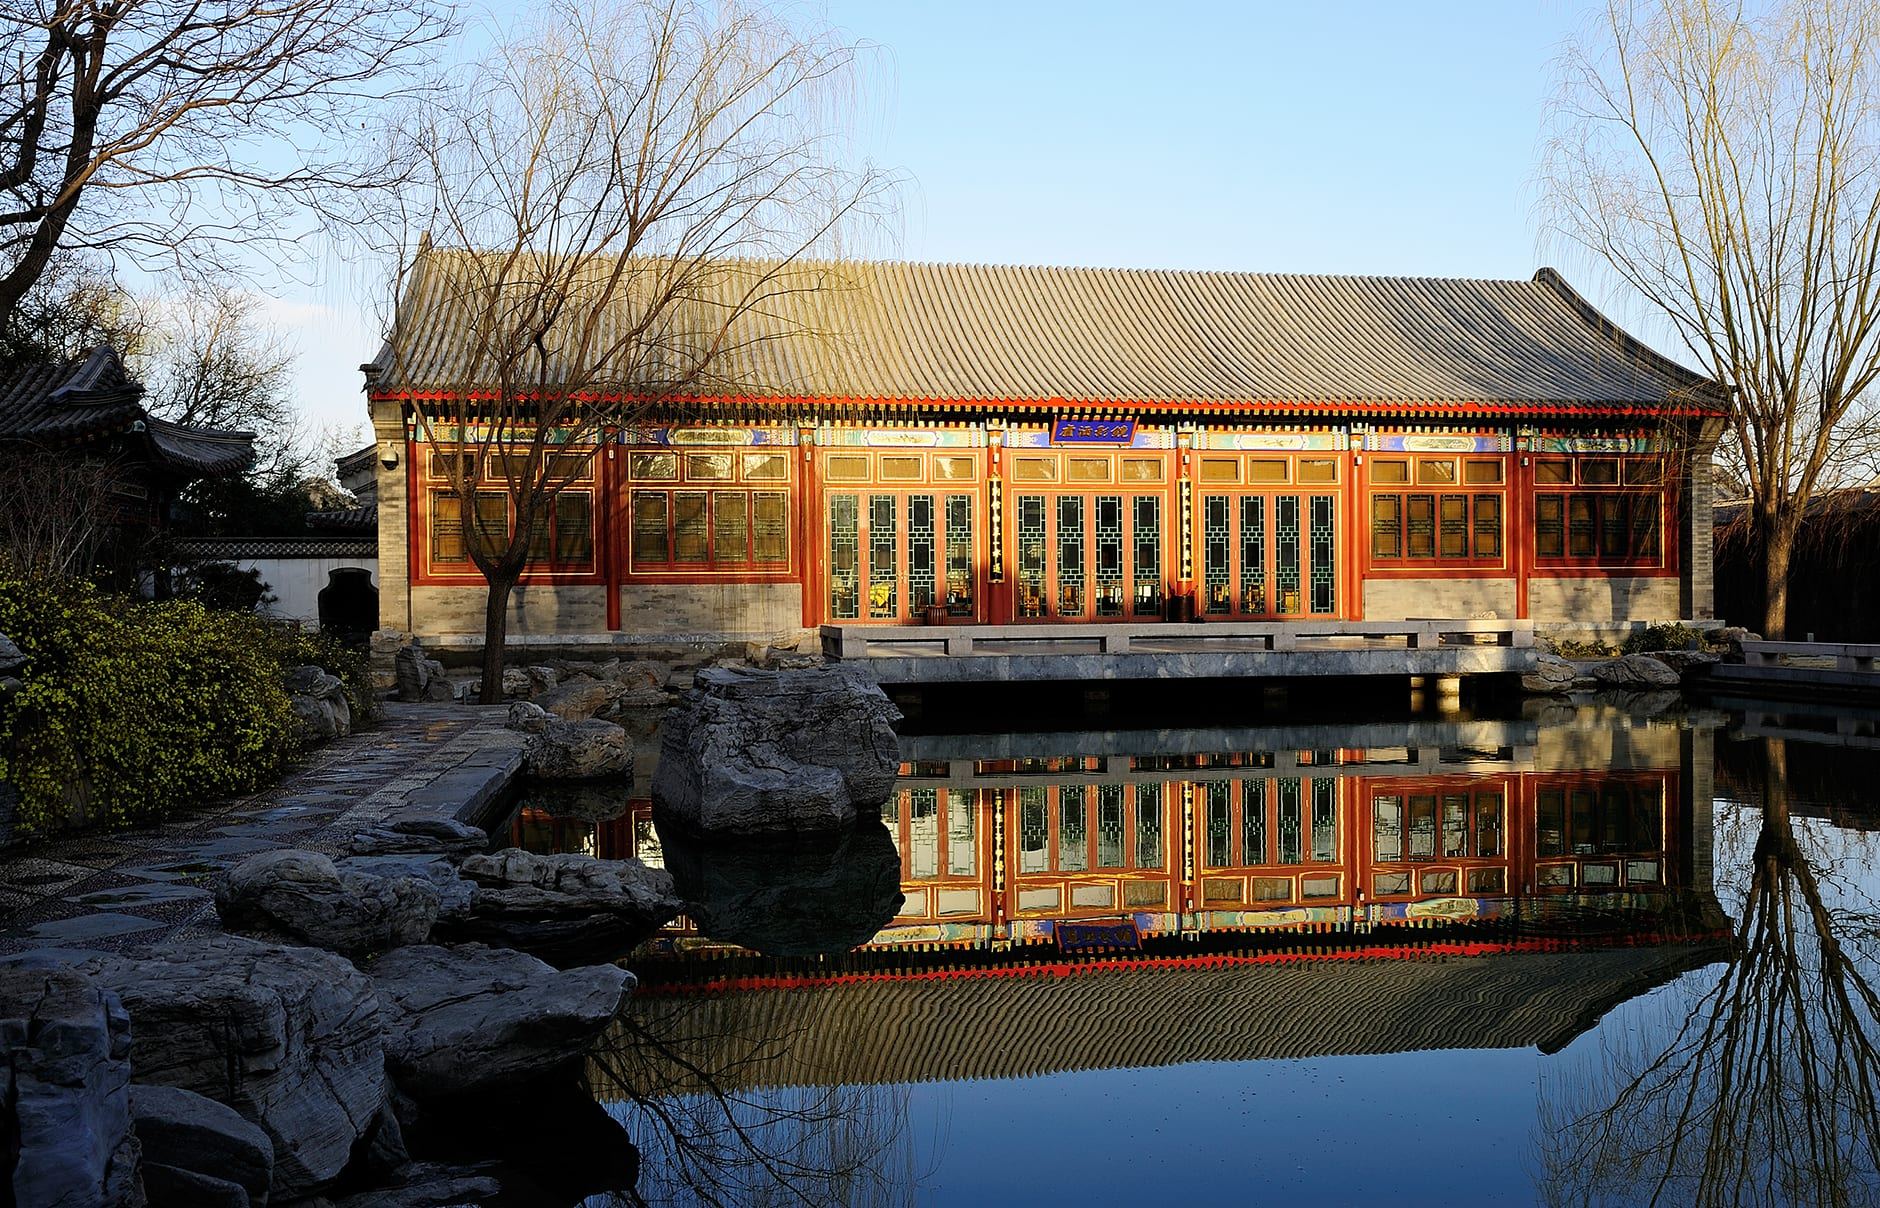 Reflection Pavilion. Aman at Summer Palace, Beijing, China. © Amanresorts